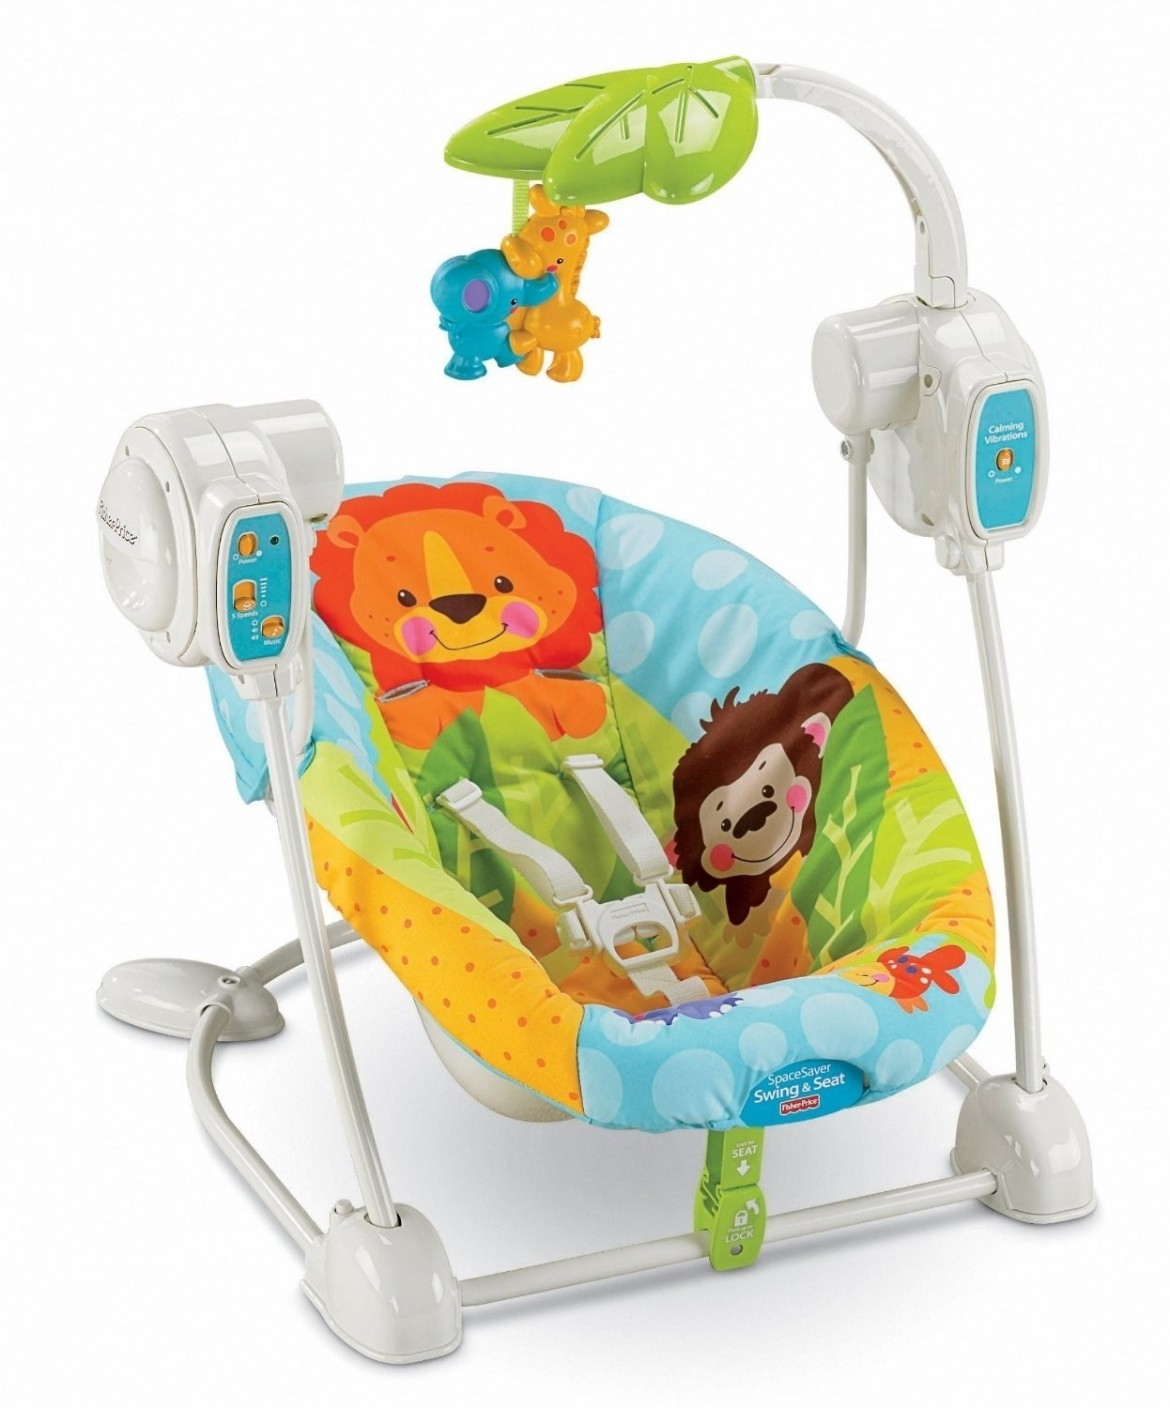 Fisher-Price SpaceSaver Swing & Seat - SpaceSaver Swing & Seat . Buy SpaceSaver Swing & Seat ...